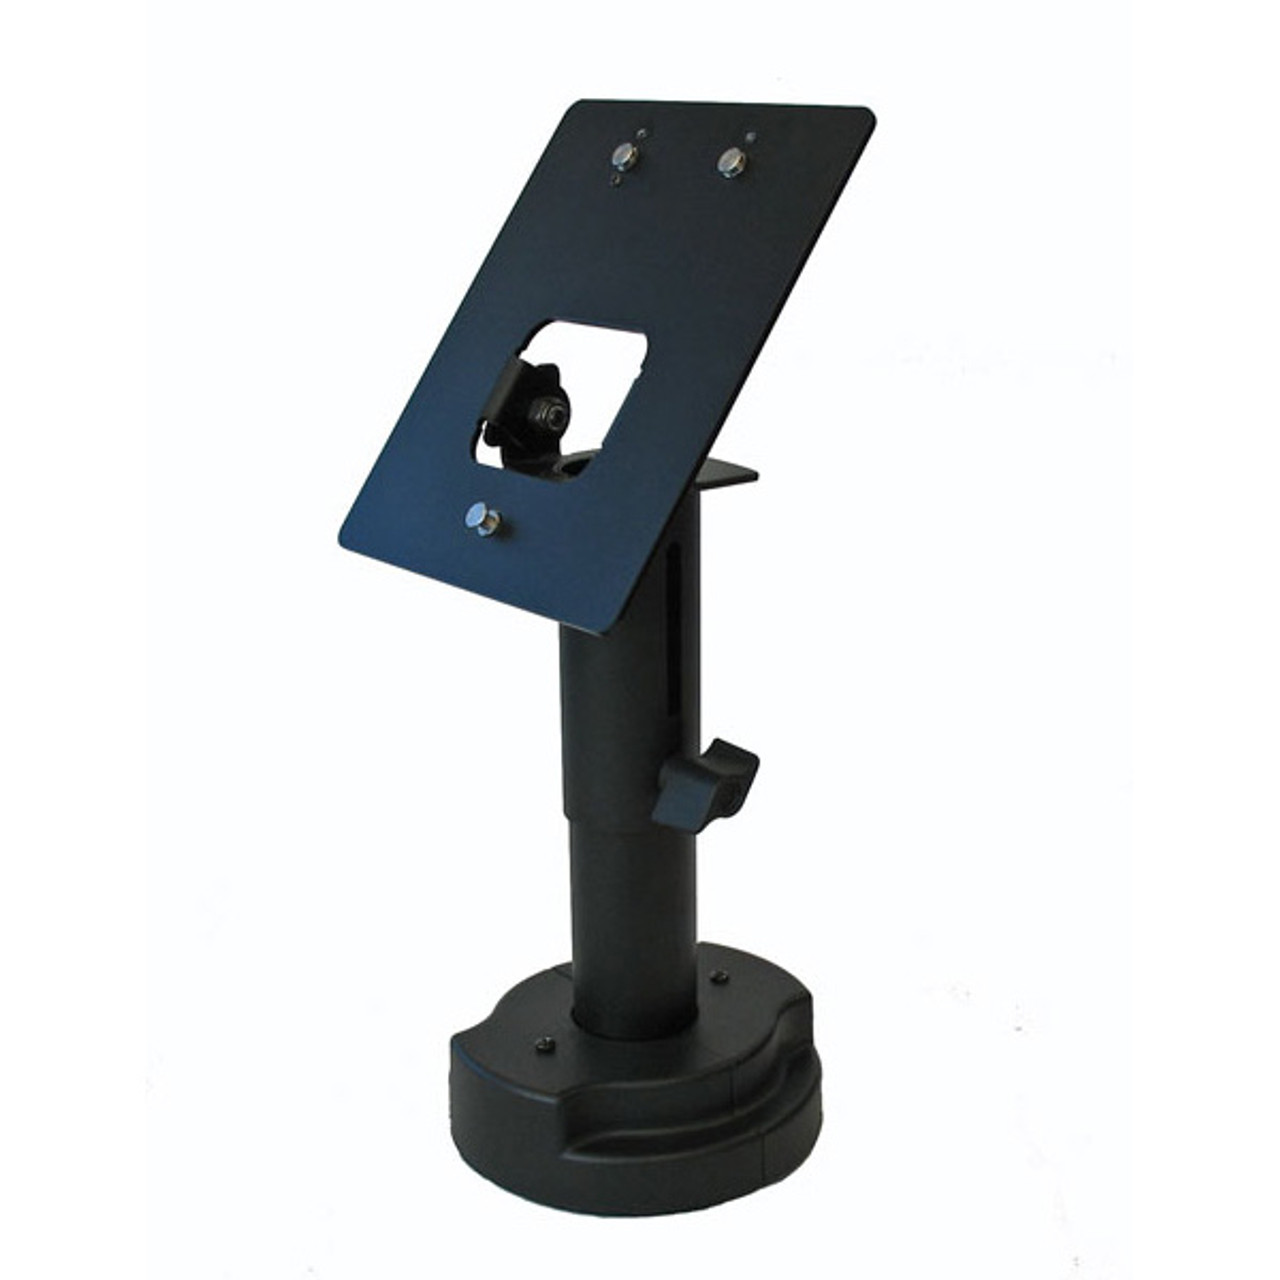 Honeywell HHP TT8500 Credit Card Stand Telescoping Pedestal by Swivel Stands